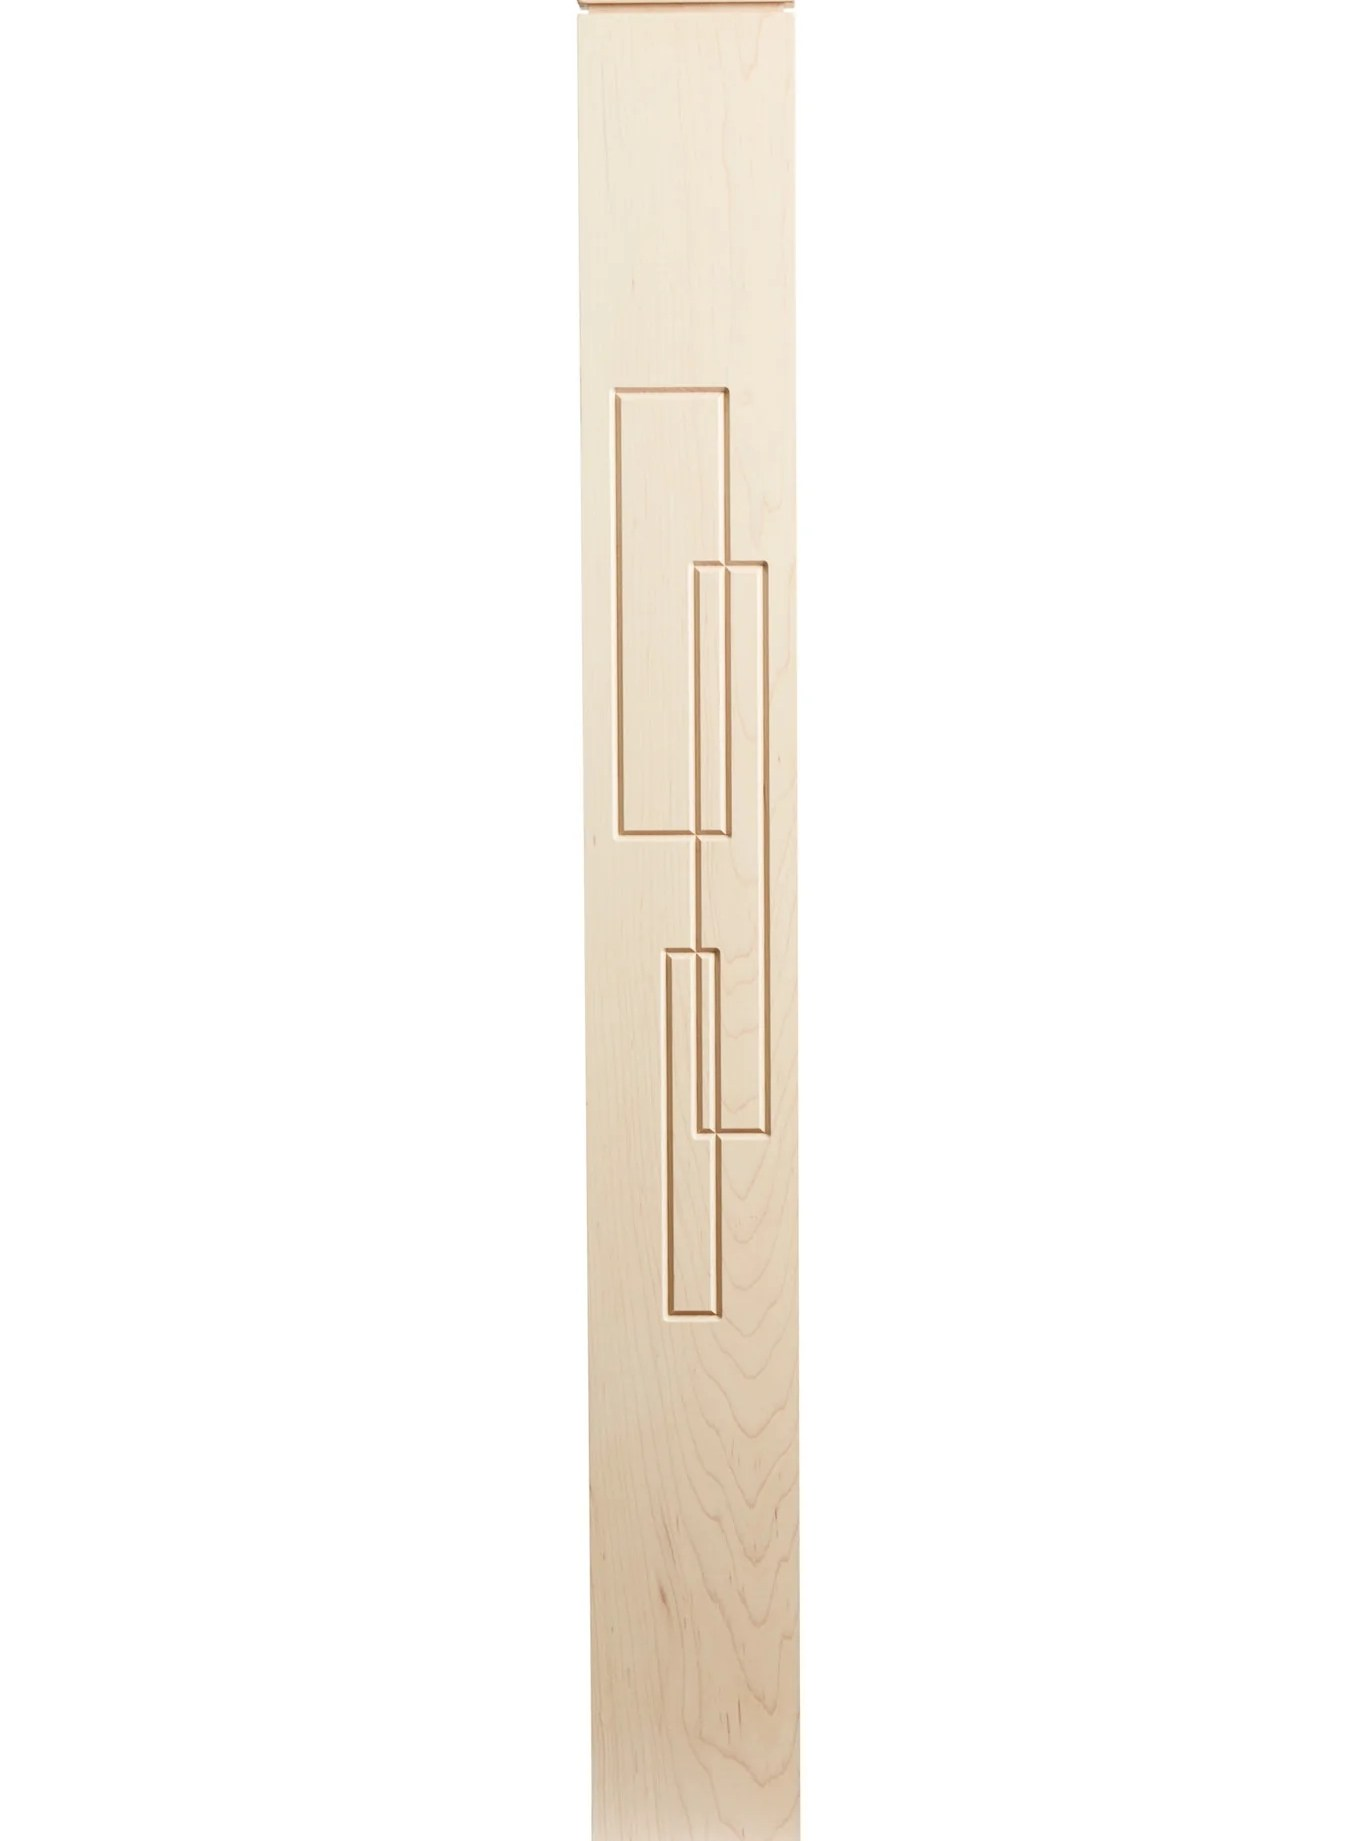 Paige Post – Custom Newel Posts   Mission Style Newel Post   Staircase   Stair Banister   Type   5 Inch   Fluted Box